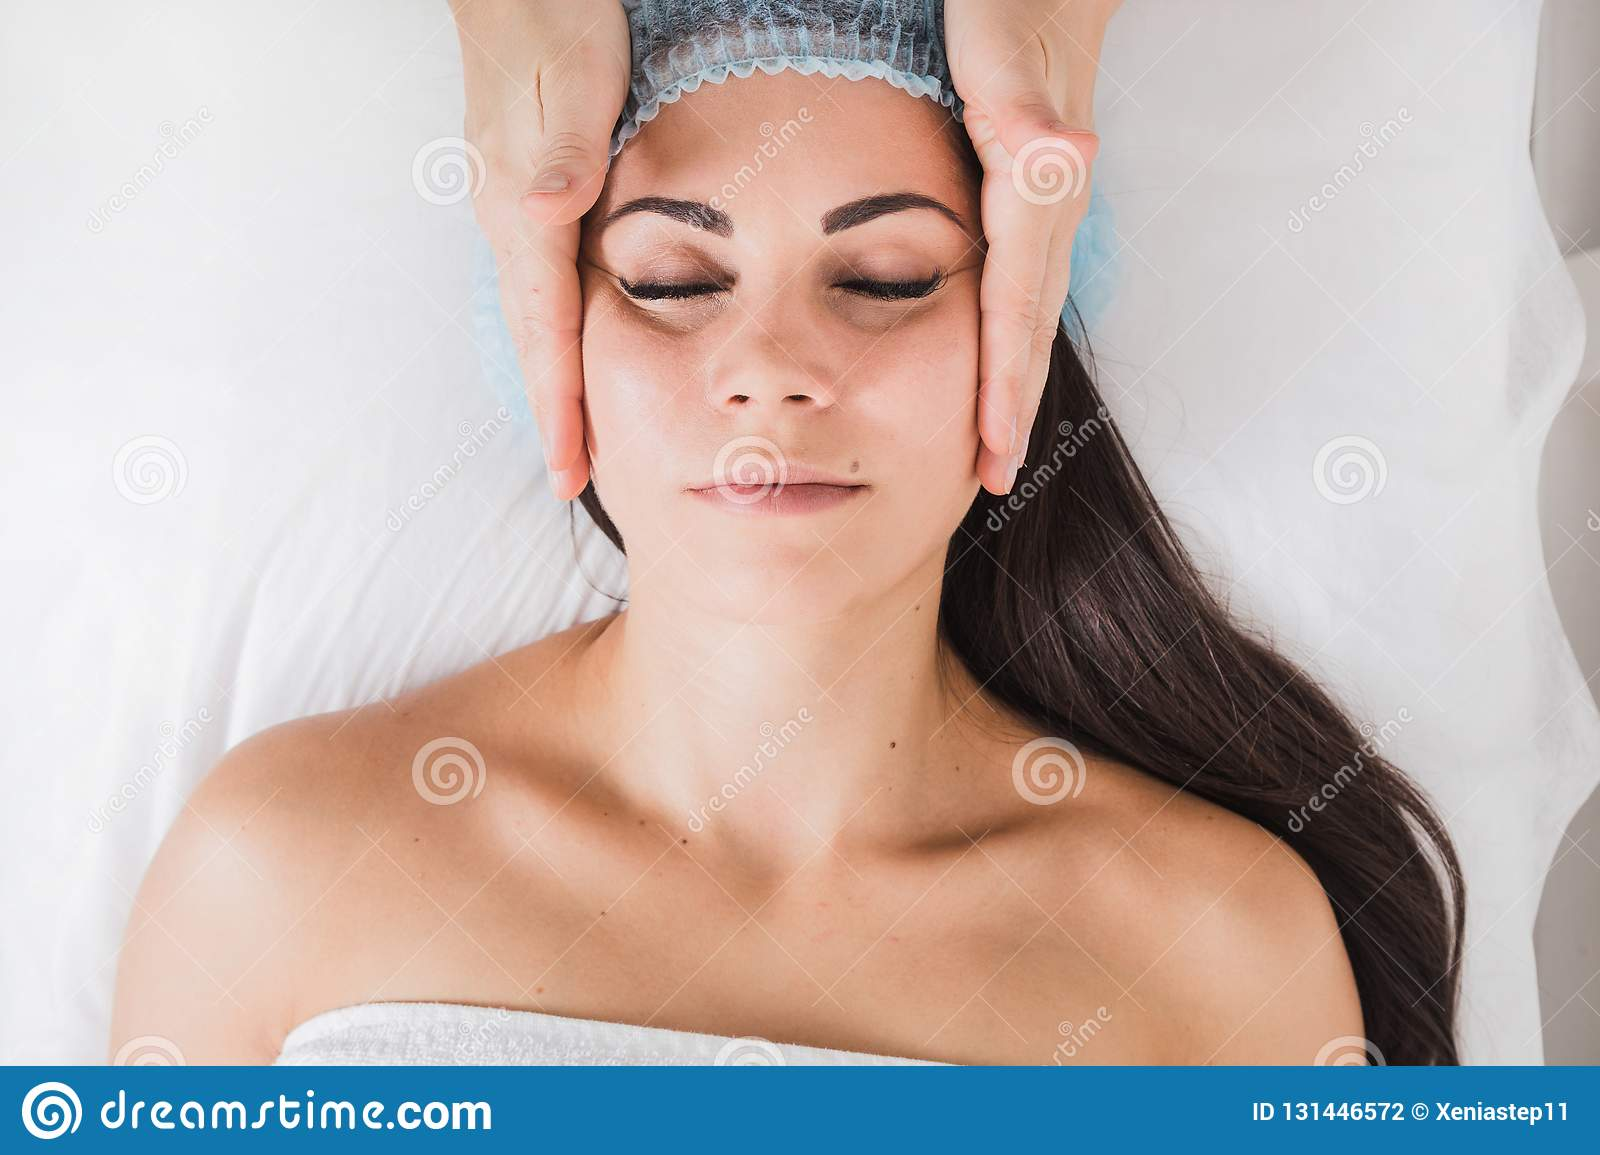 Young beautiful girl getting a facial massage in a beauty salon